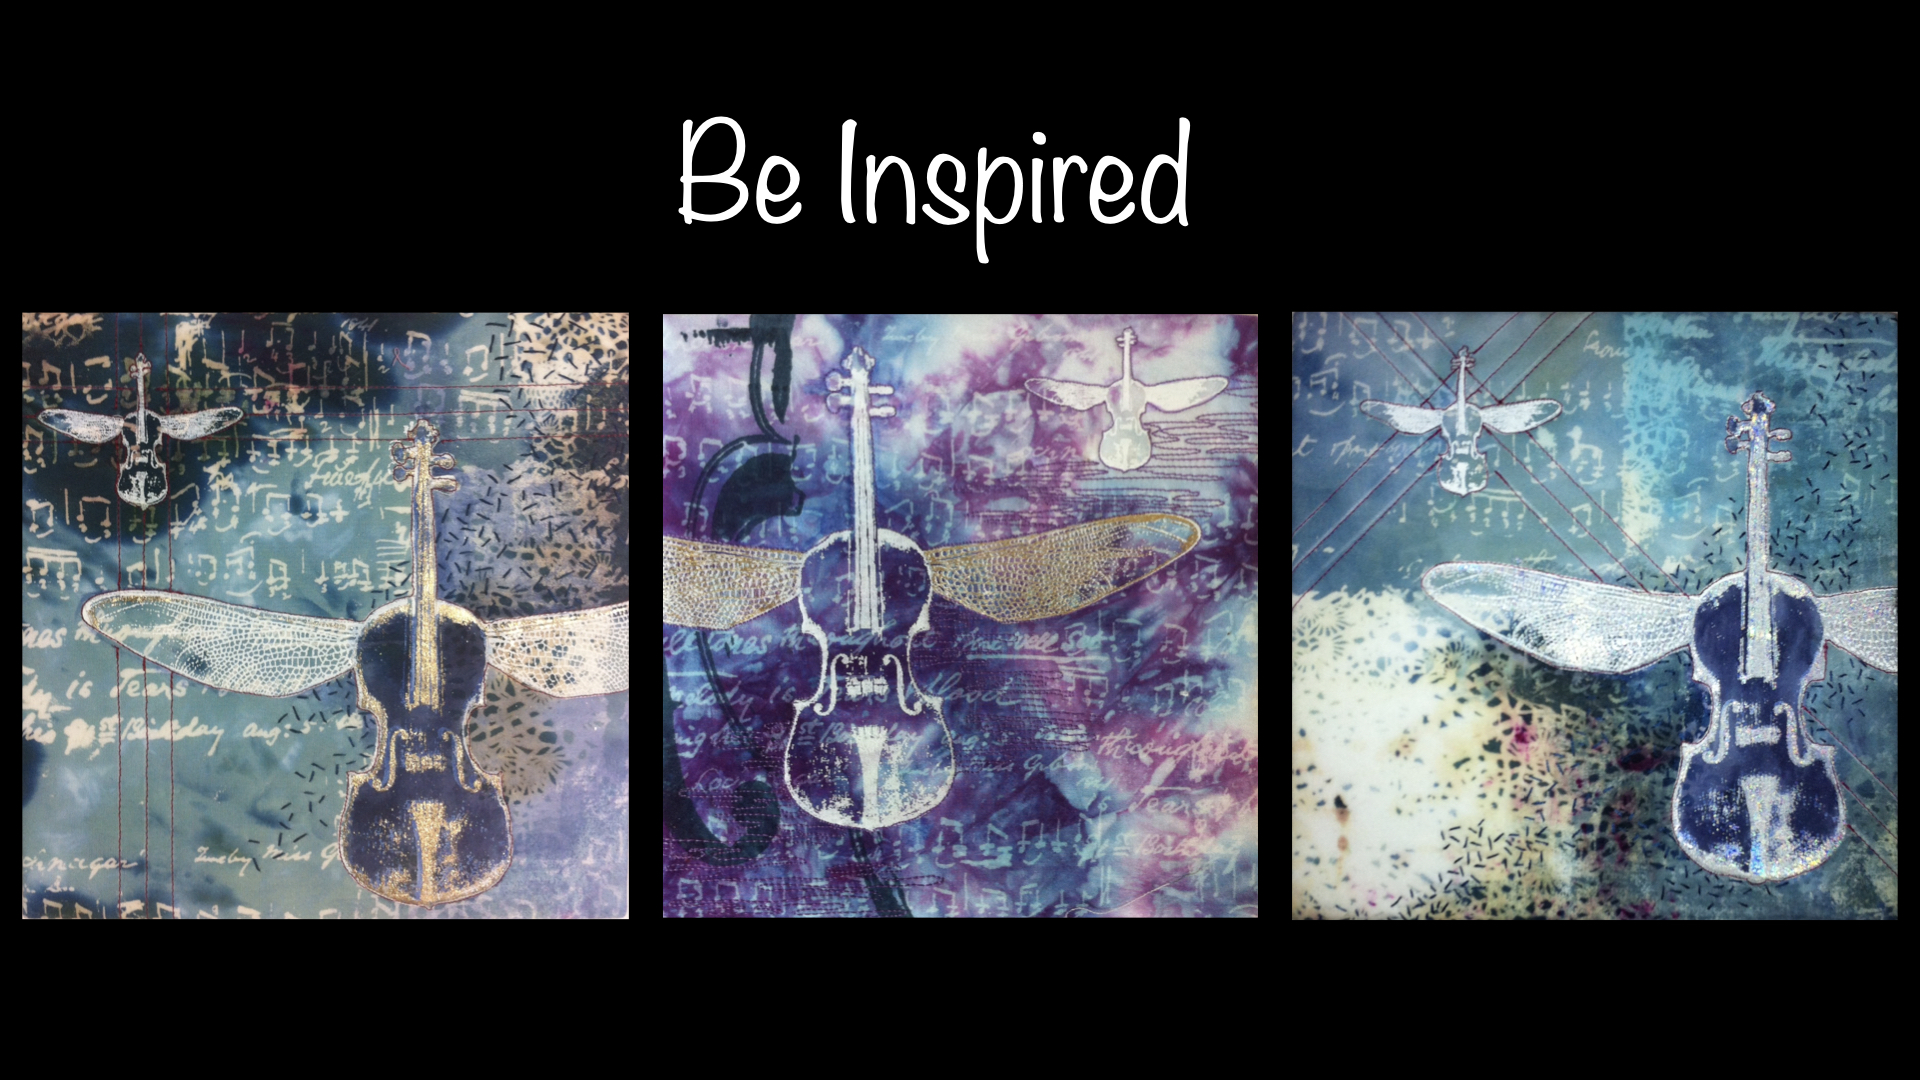 be inspired with photos of lyric's artwork